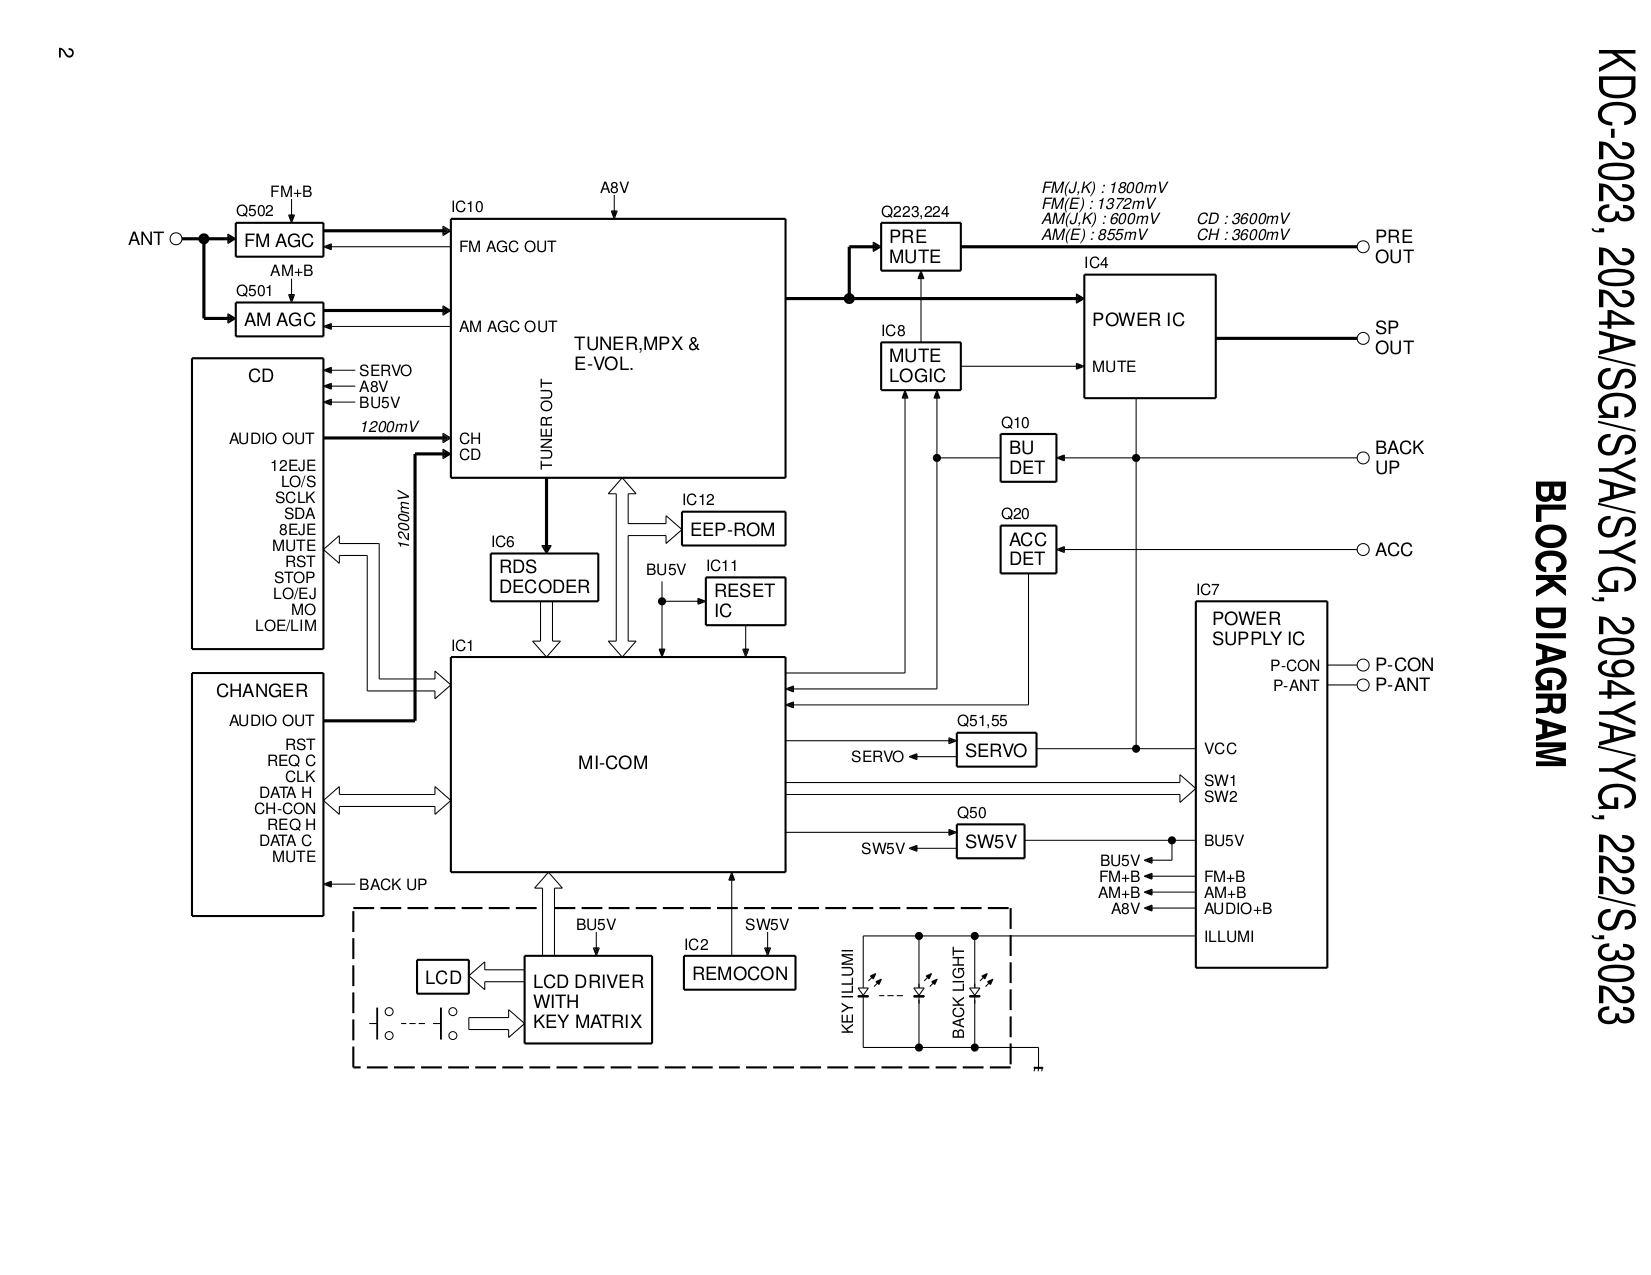 kdc2023 2024 2094 222 3023.pdf 1 kenwood kdc bt555u wiring diagram wiring diagram for kenwood kdc kenwood kdc bt555u wiring diagram at readyjetset.co